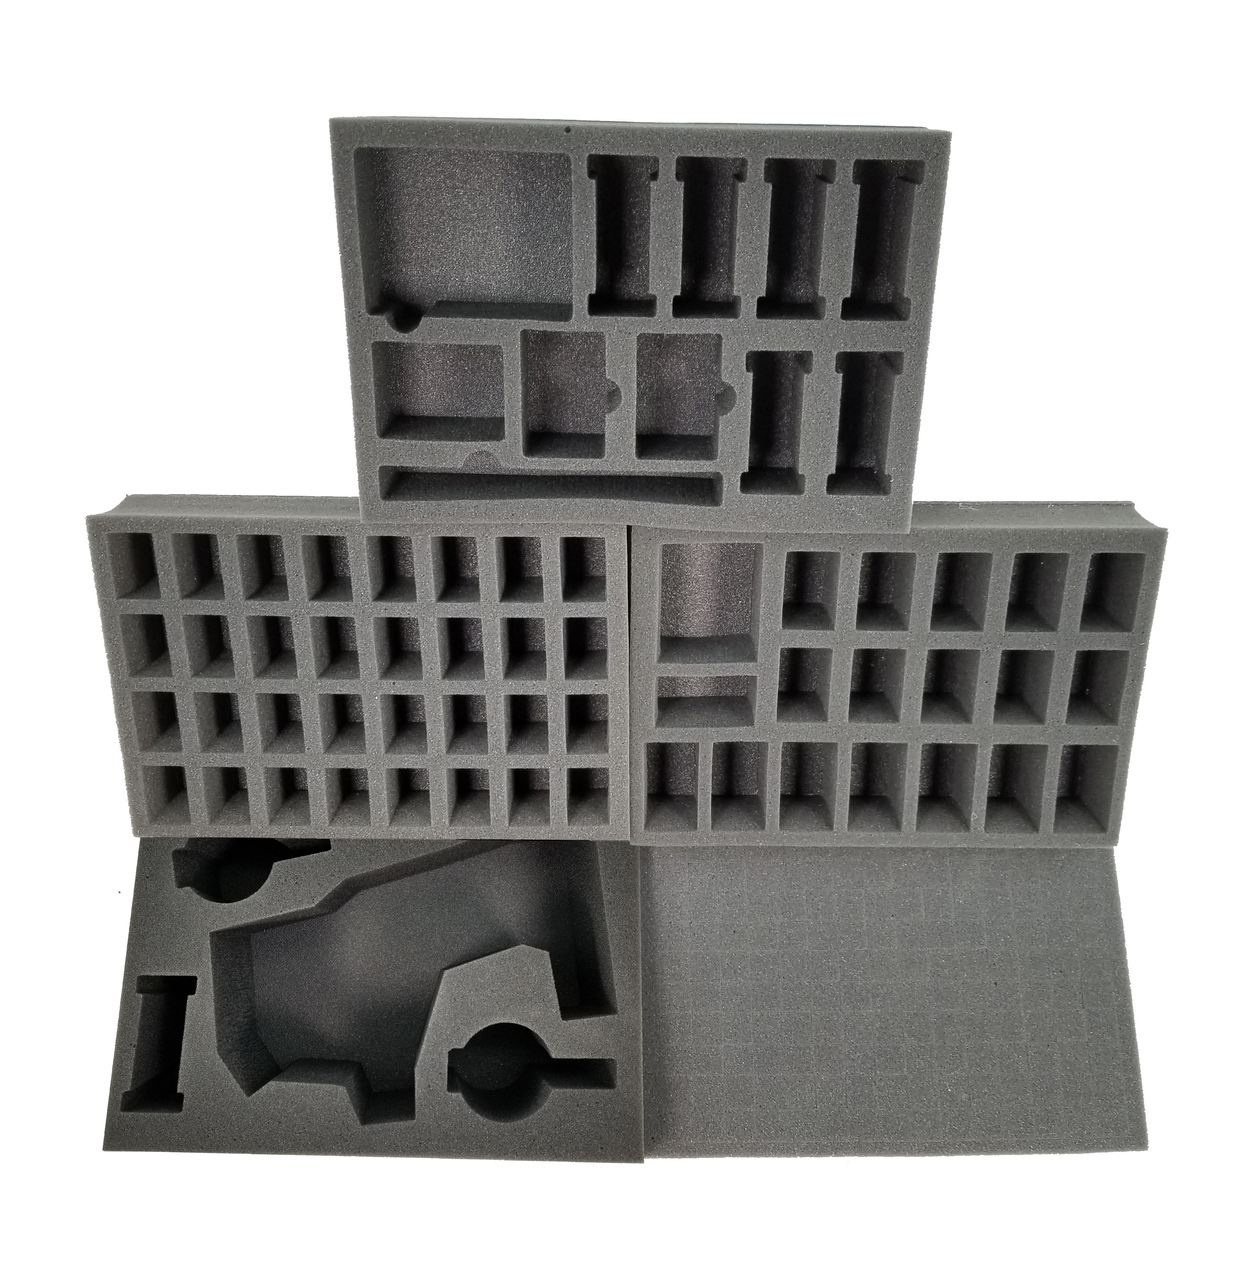 Star Wars Legion: Imperial First Wave Foam Tray Kit for the P.A.C.K. 352 (BFS)